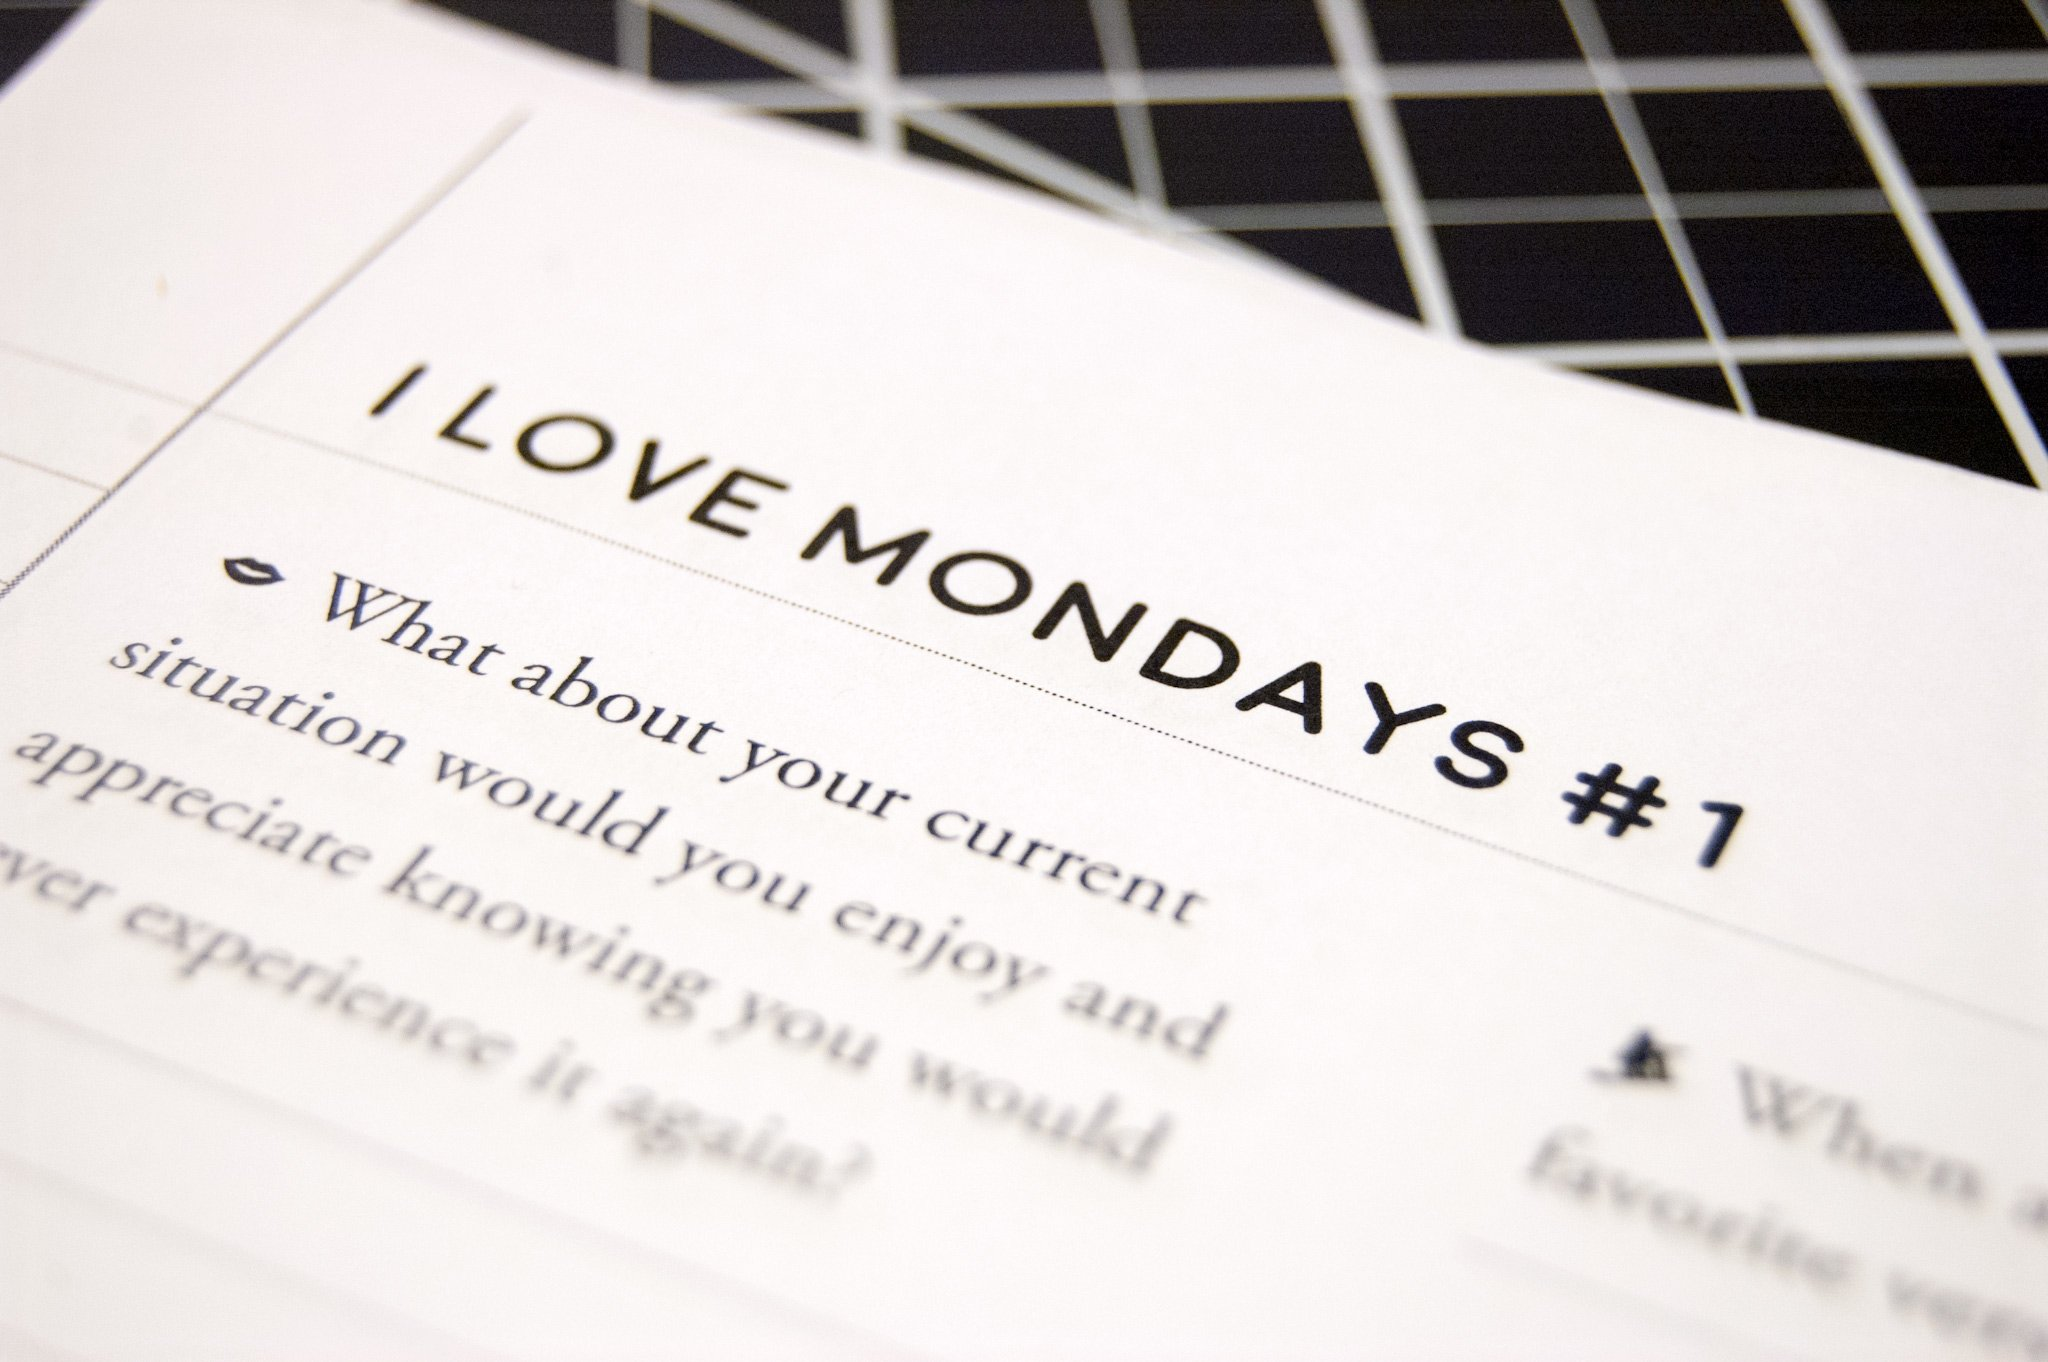 I Love Mondays! conscious creation worksheet